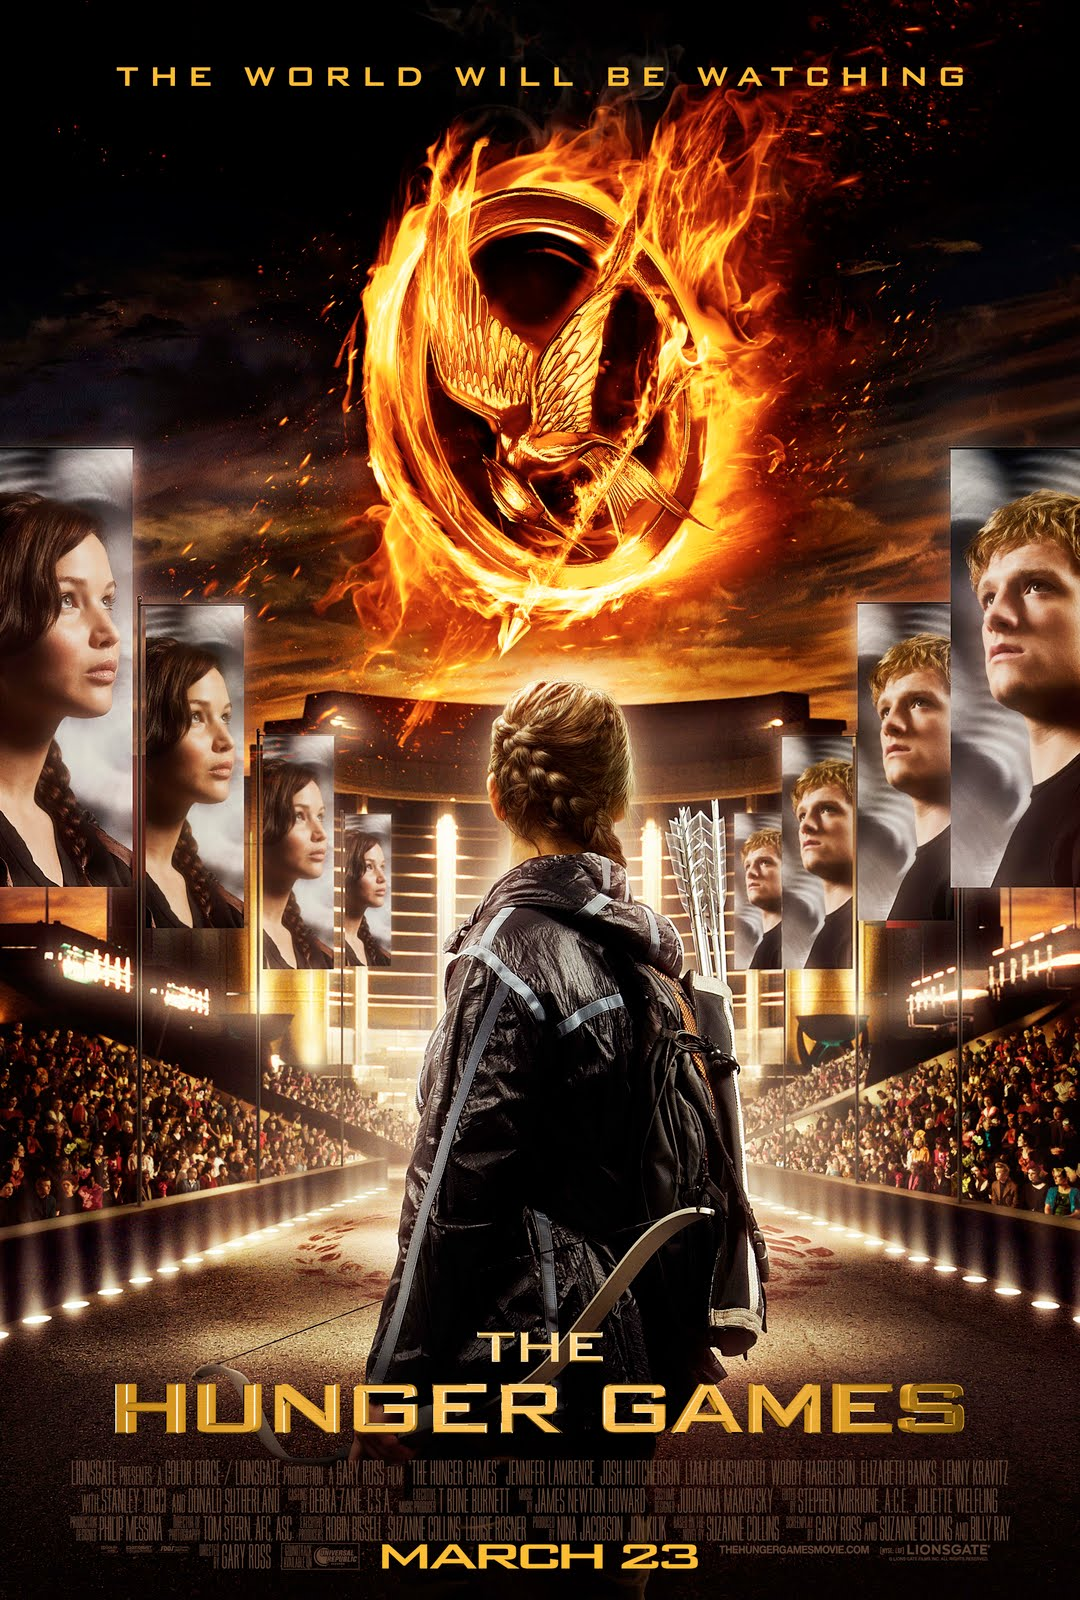 The Hunger Games: New Poster & Promotional Image